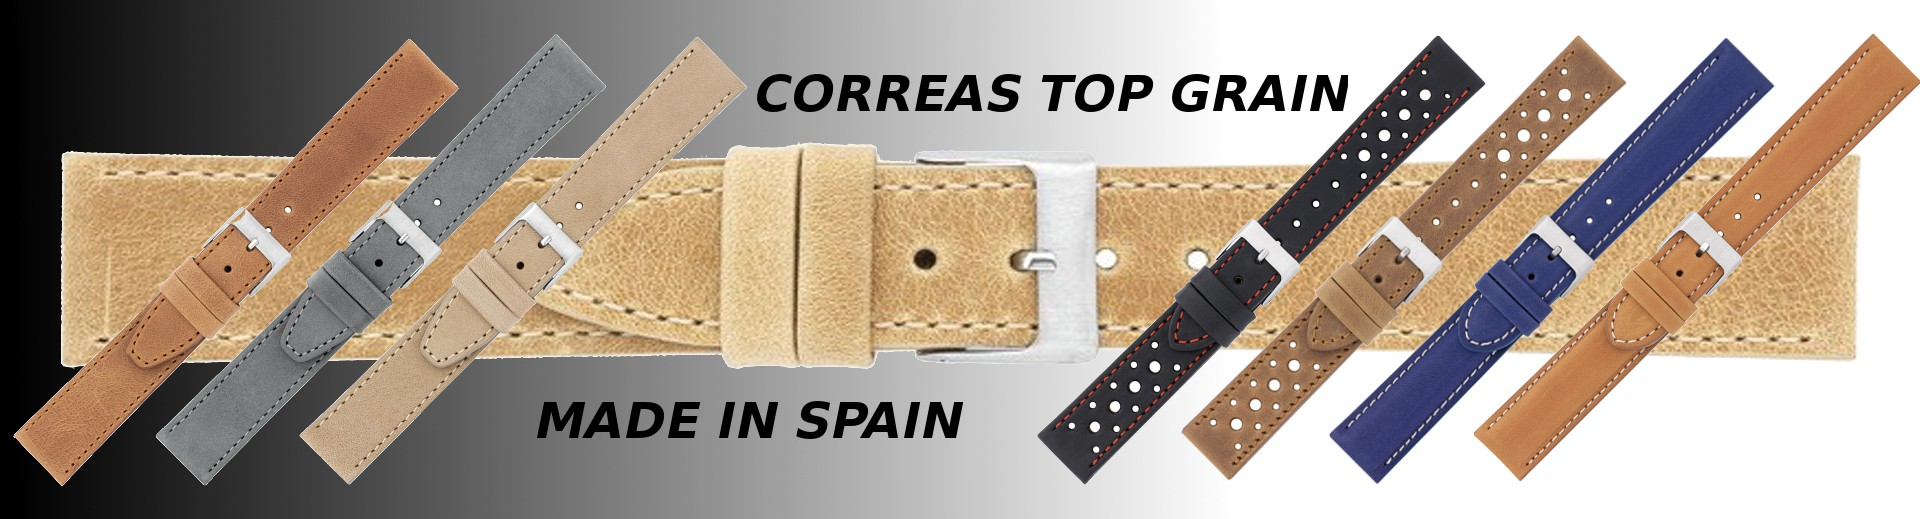 Correas Top Grain Made in Spain